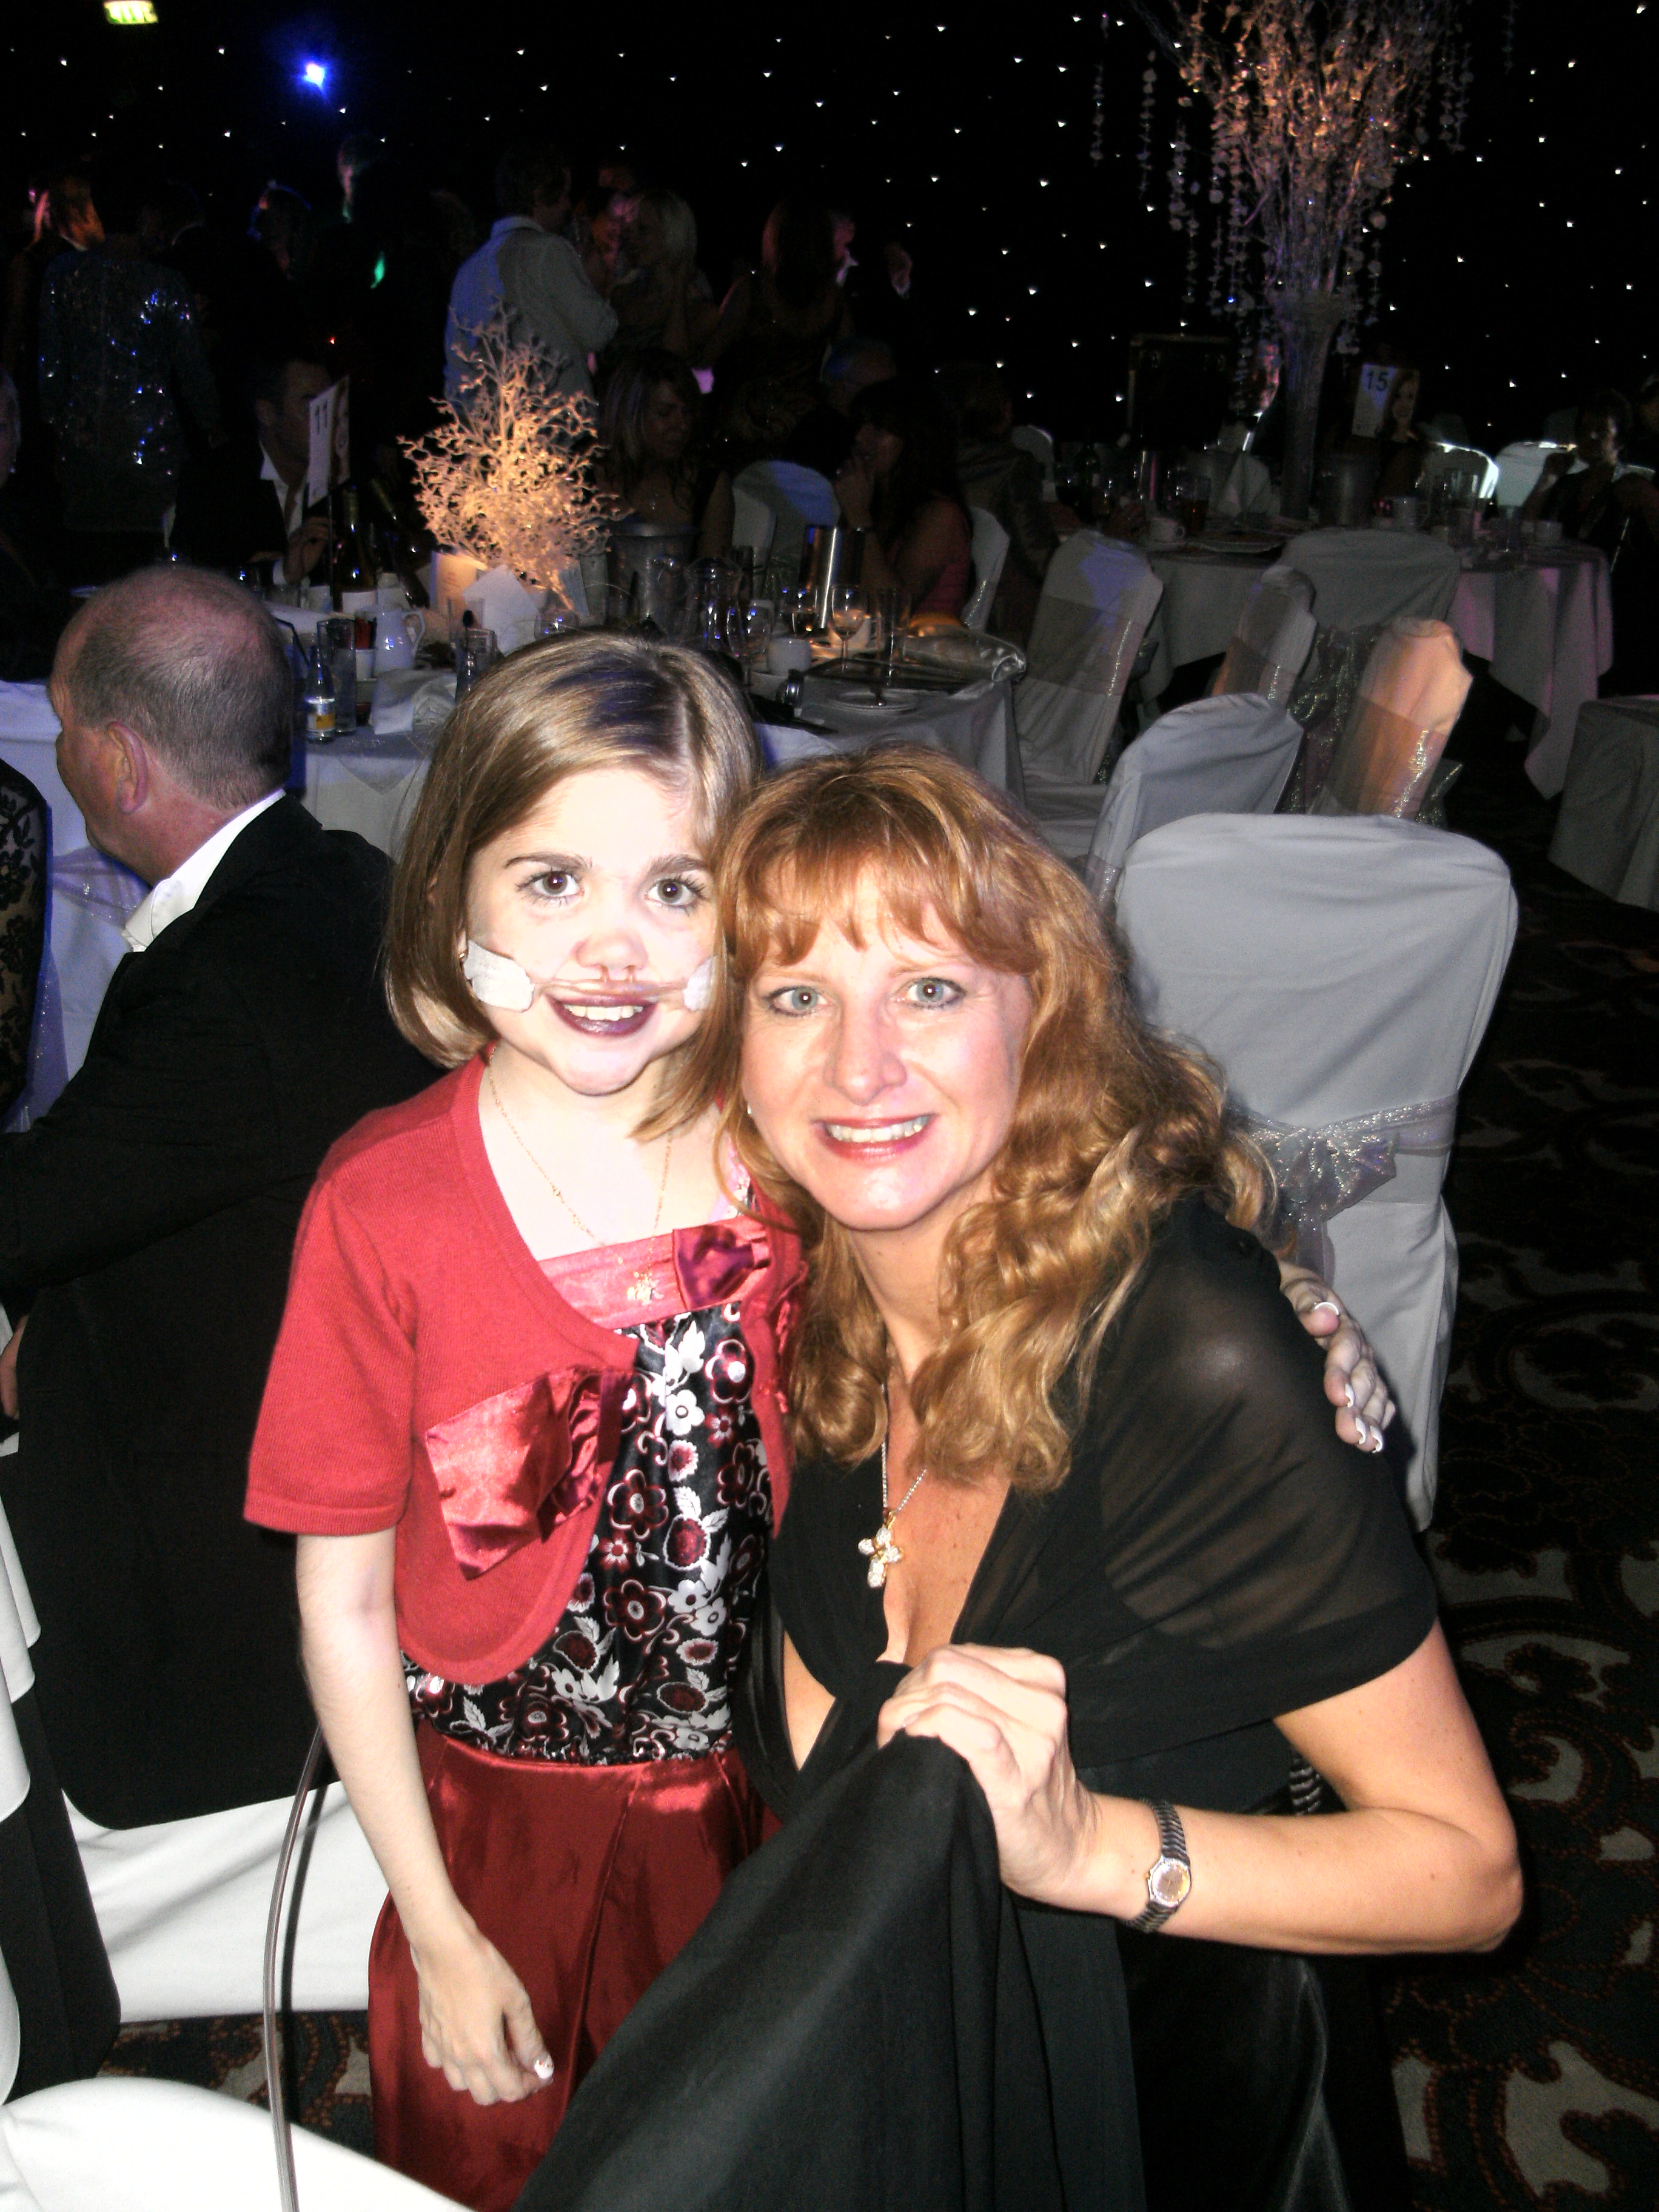 Kirsty Howard & Andrea Bommer